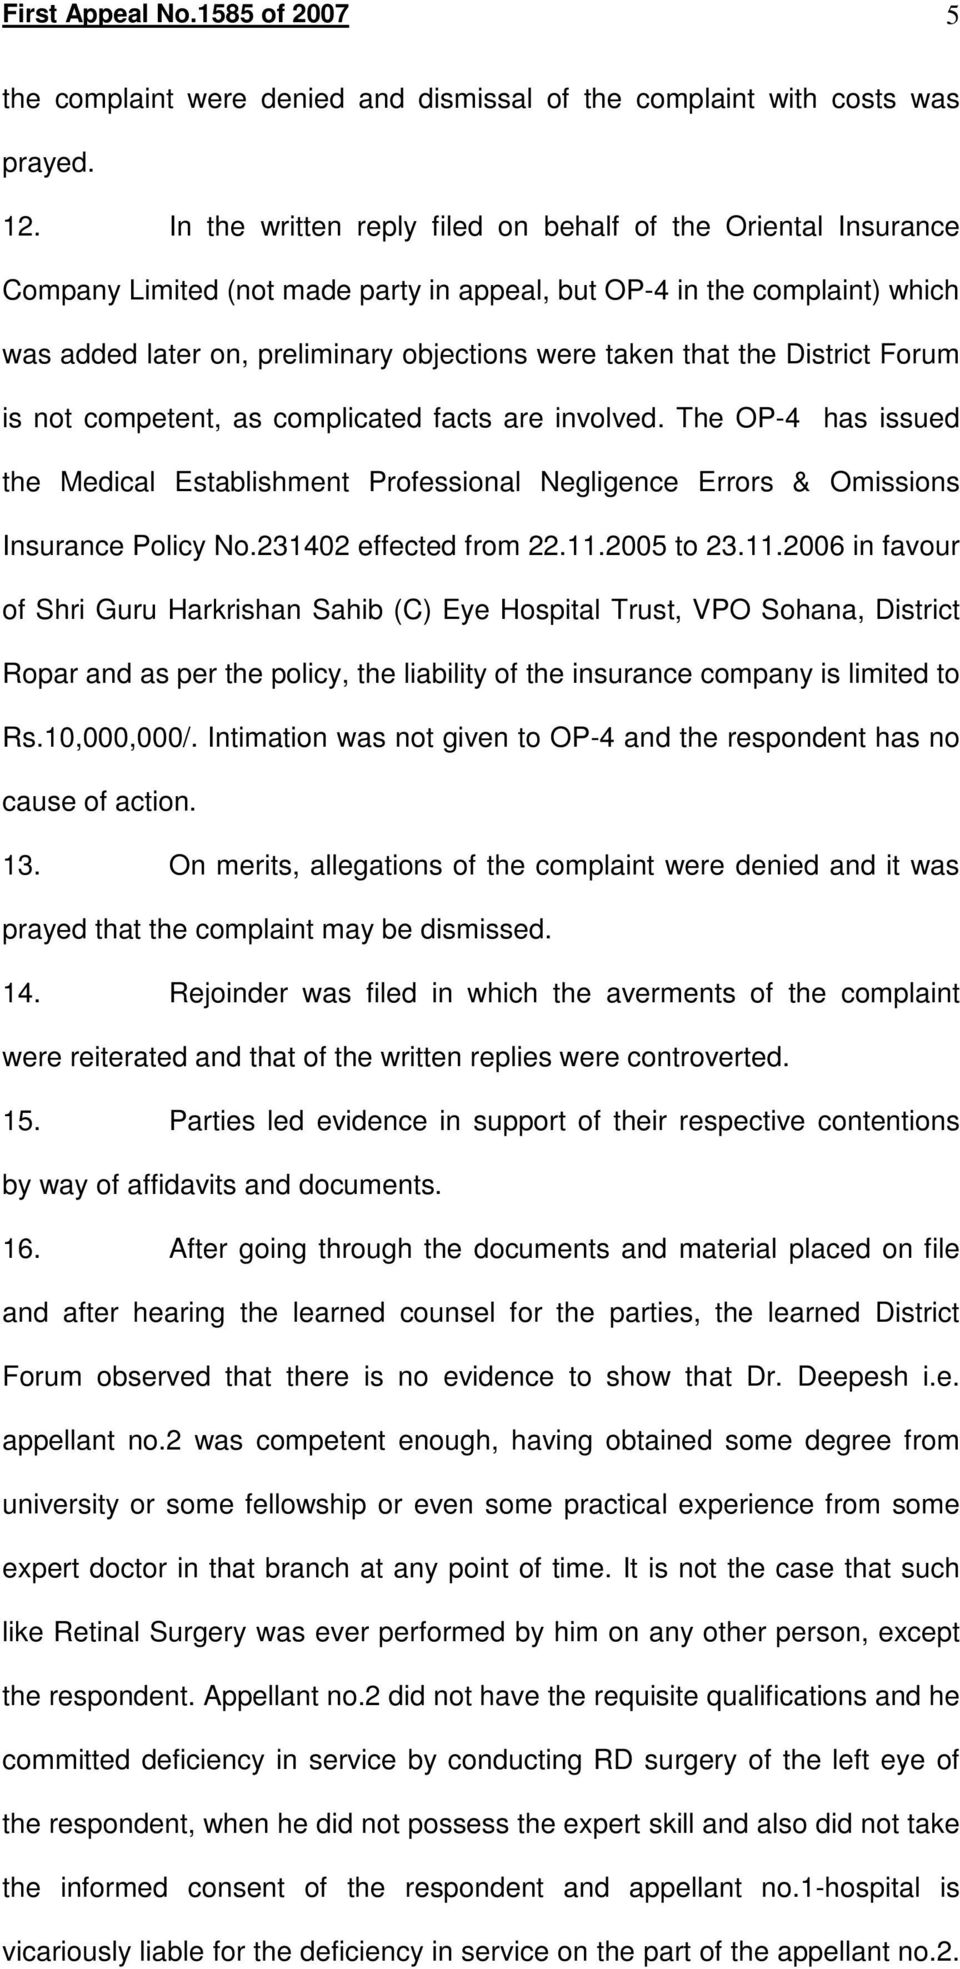 the District Forum is not competent, as complicated facts are involved. The OP-4 has issued the Medical Establishment Professional Negligence Errors & Omissions Insurance Policy No.